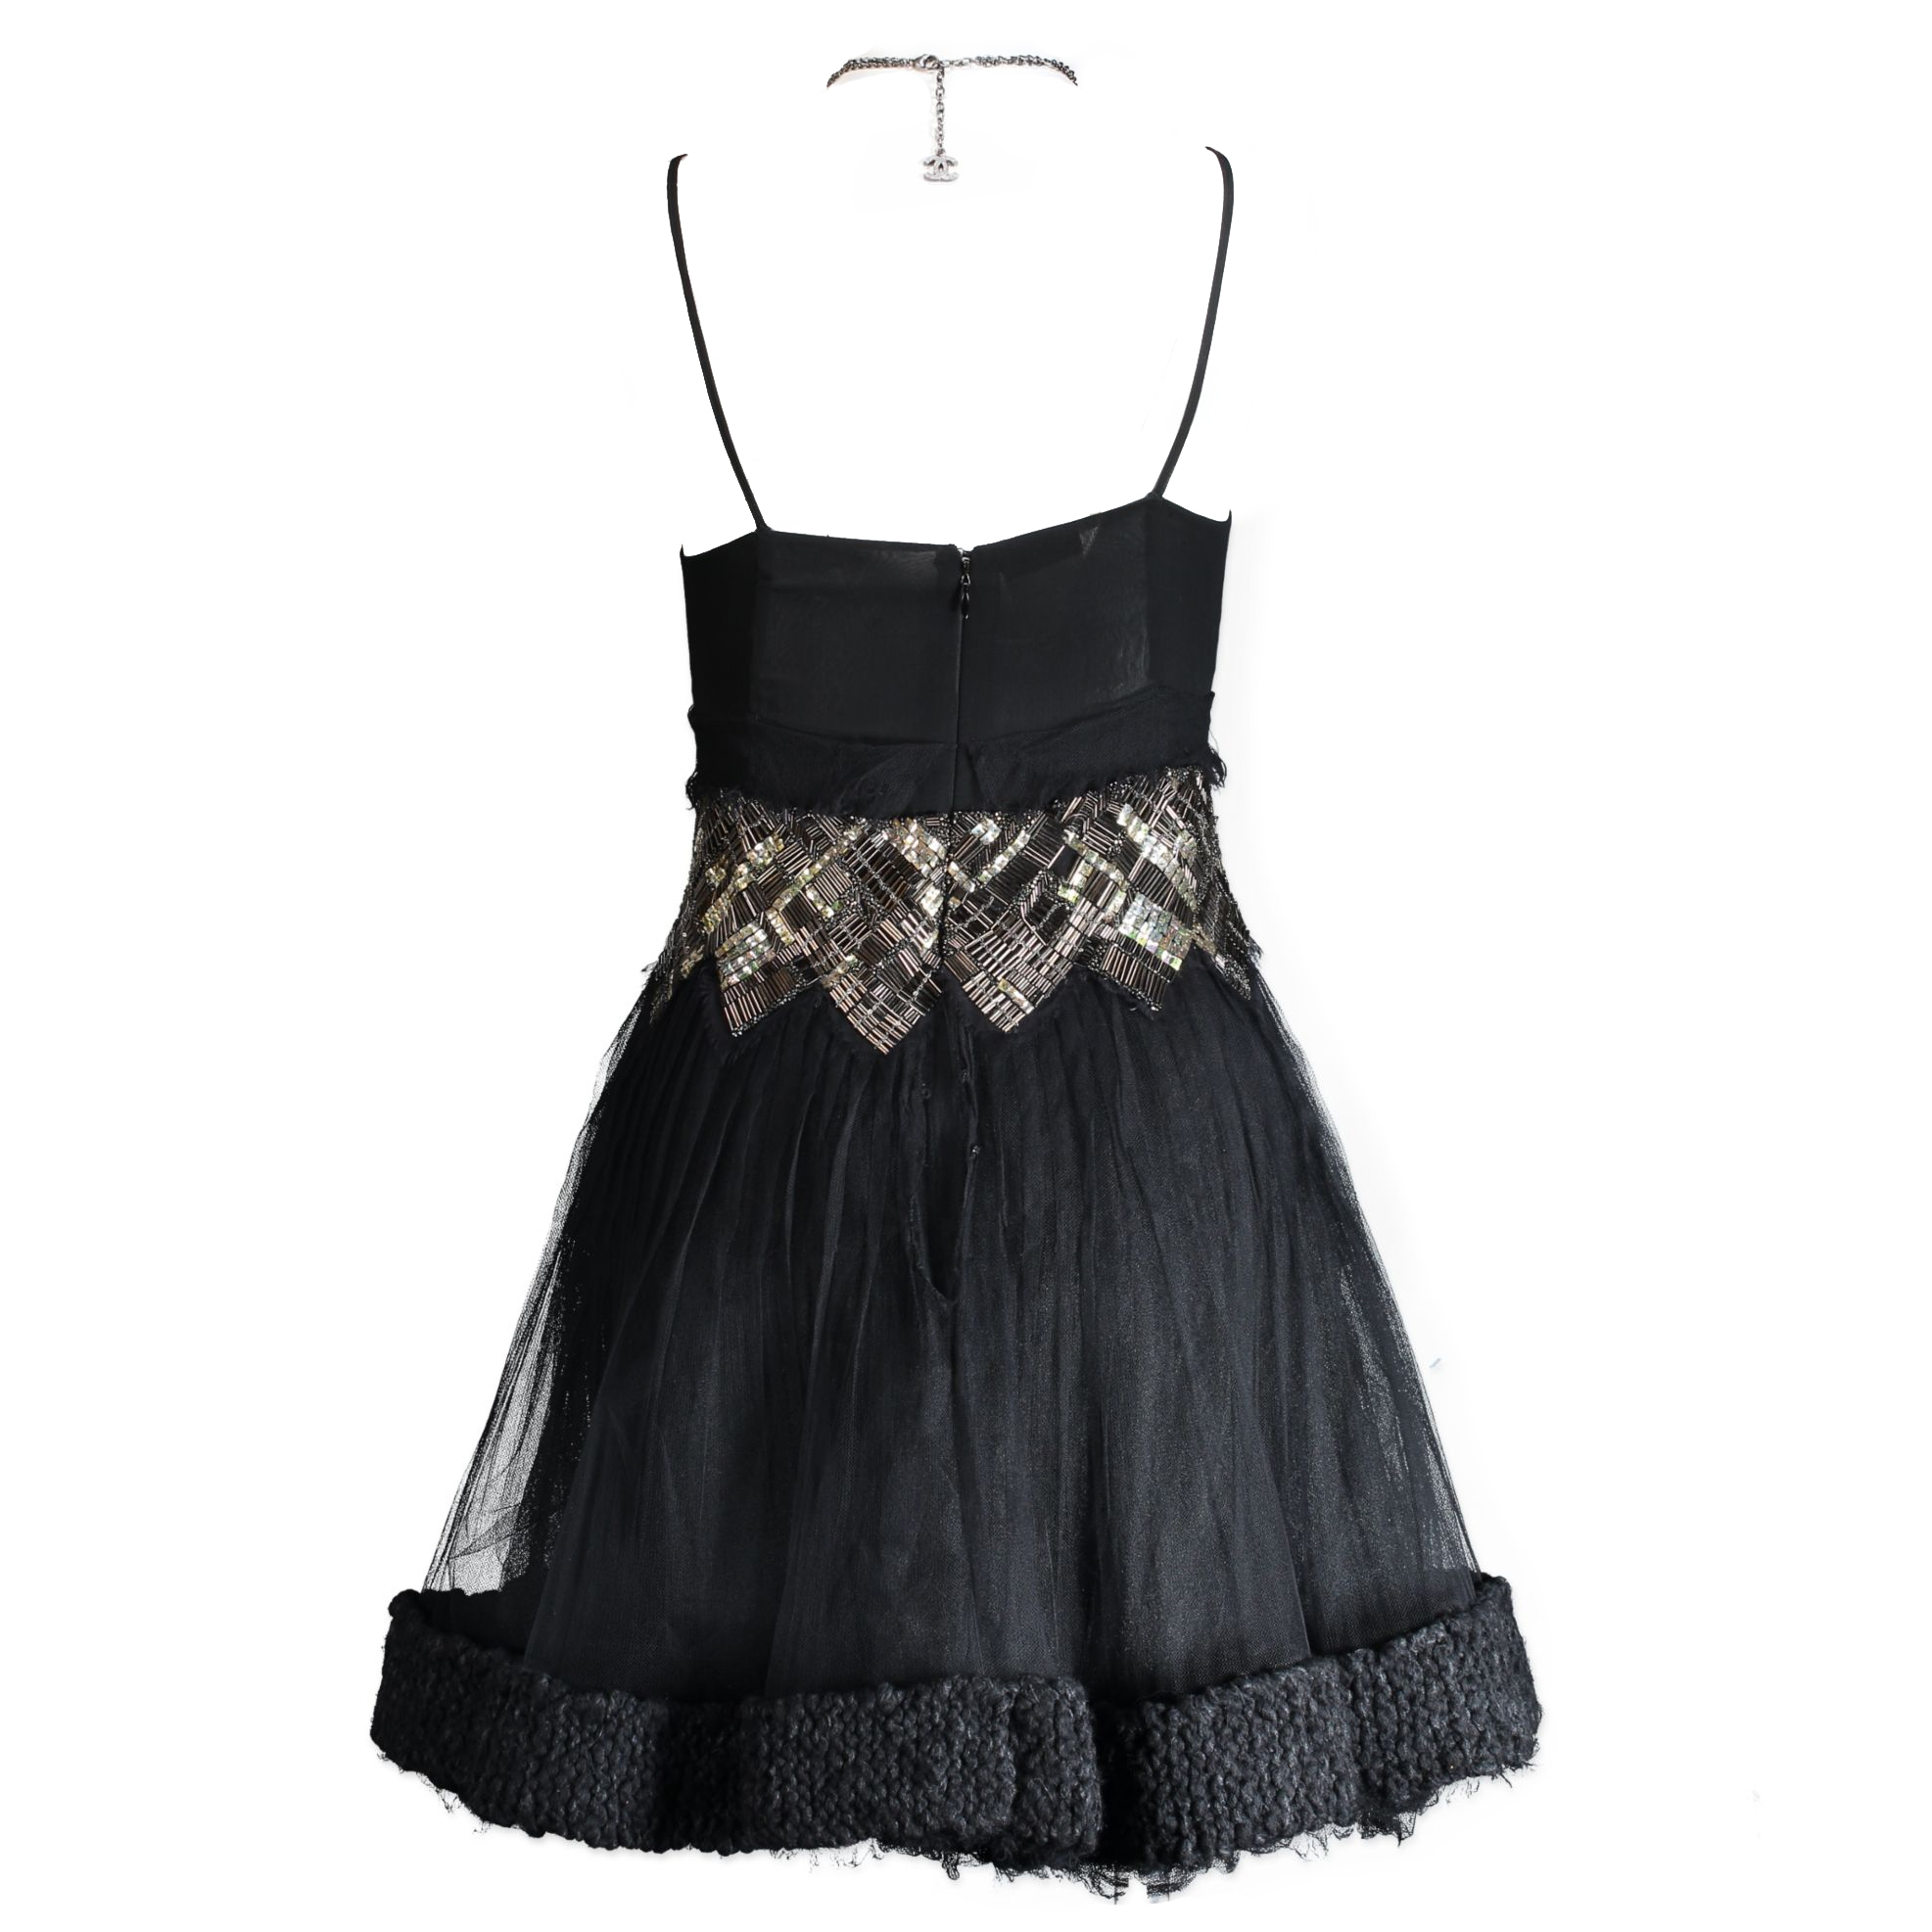 Chanel Rare Black Cocktail Dress - Size FR 38